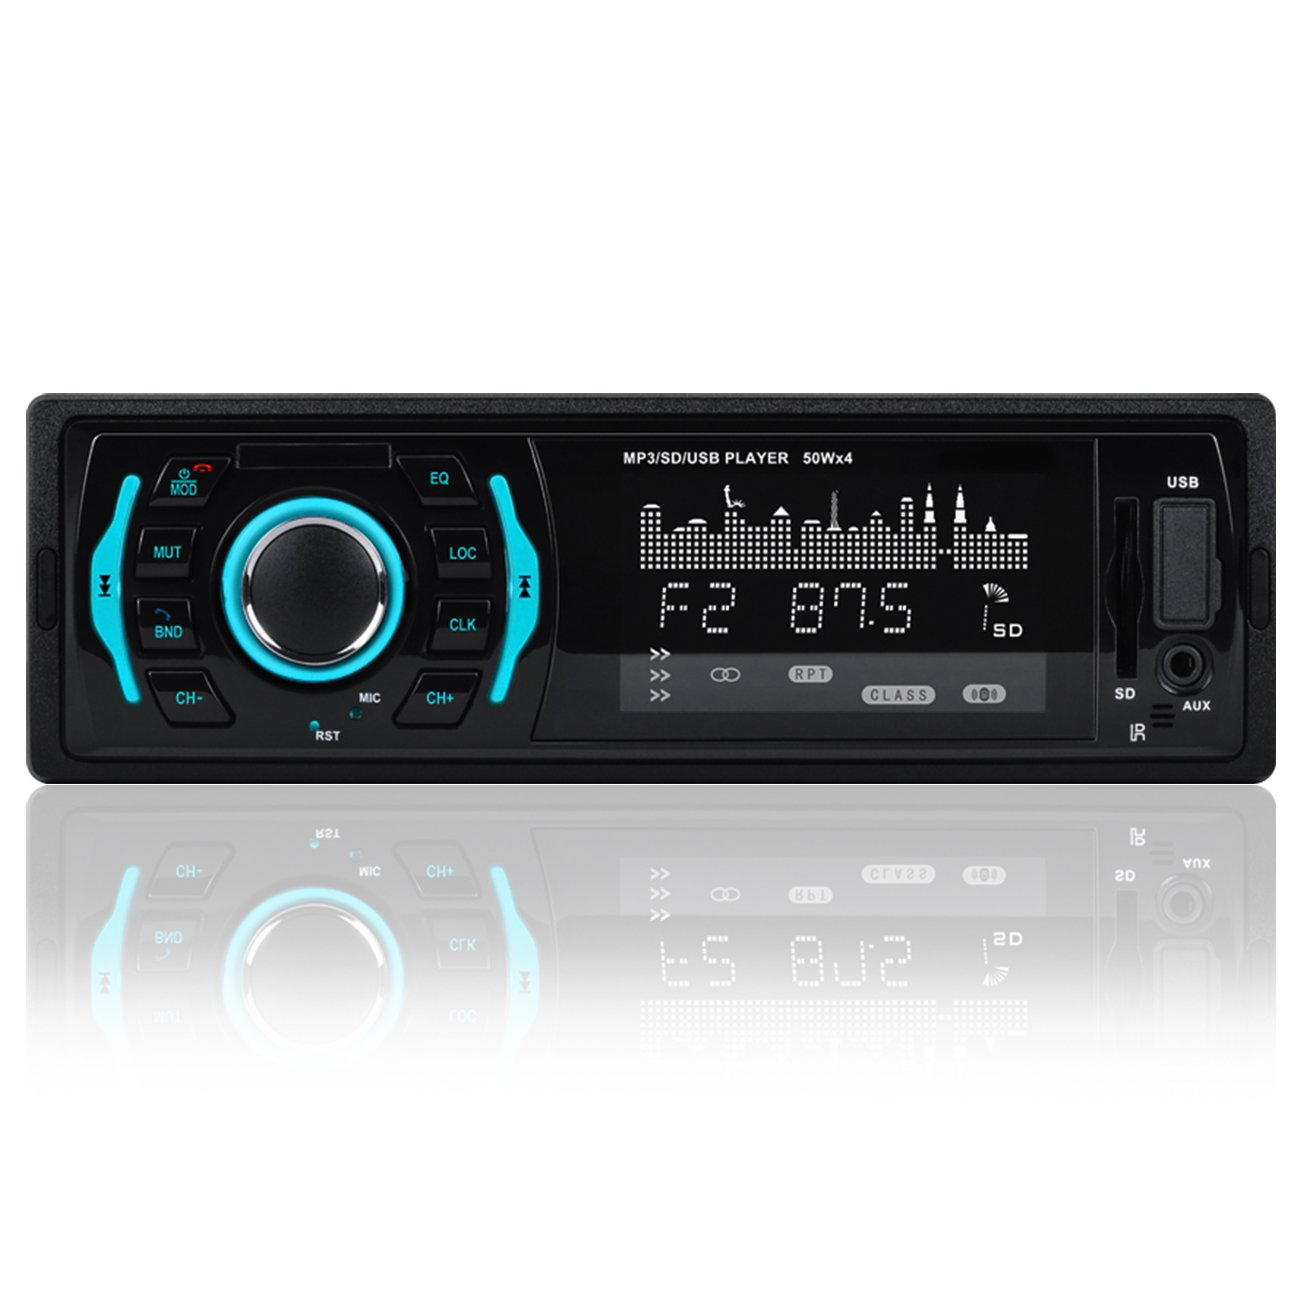 Favoto Car Stereo Receiver Single Din with Bluetooth MP3 Player Audio Receiver Digital Media Receivers Autoradio with Remote Control Support Hands-Free Call USB SD FM AUX DC12V with Gift Micro SD Card Reader FTUS-MP3-RK525-Sdcard